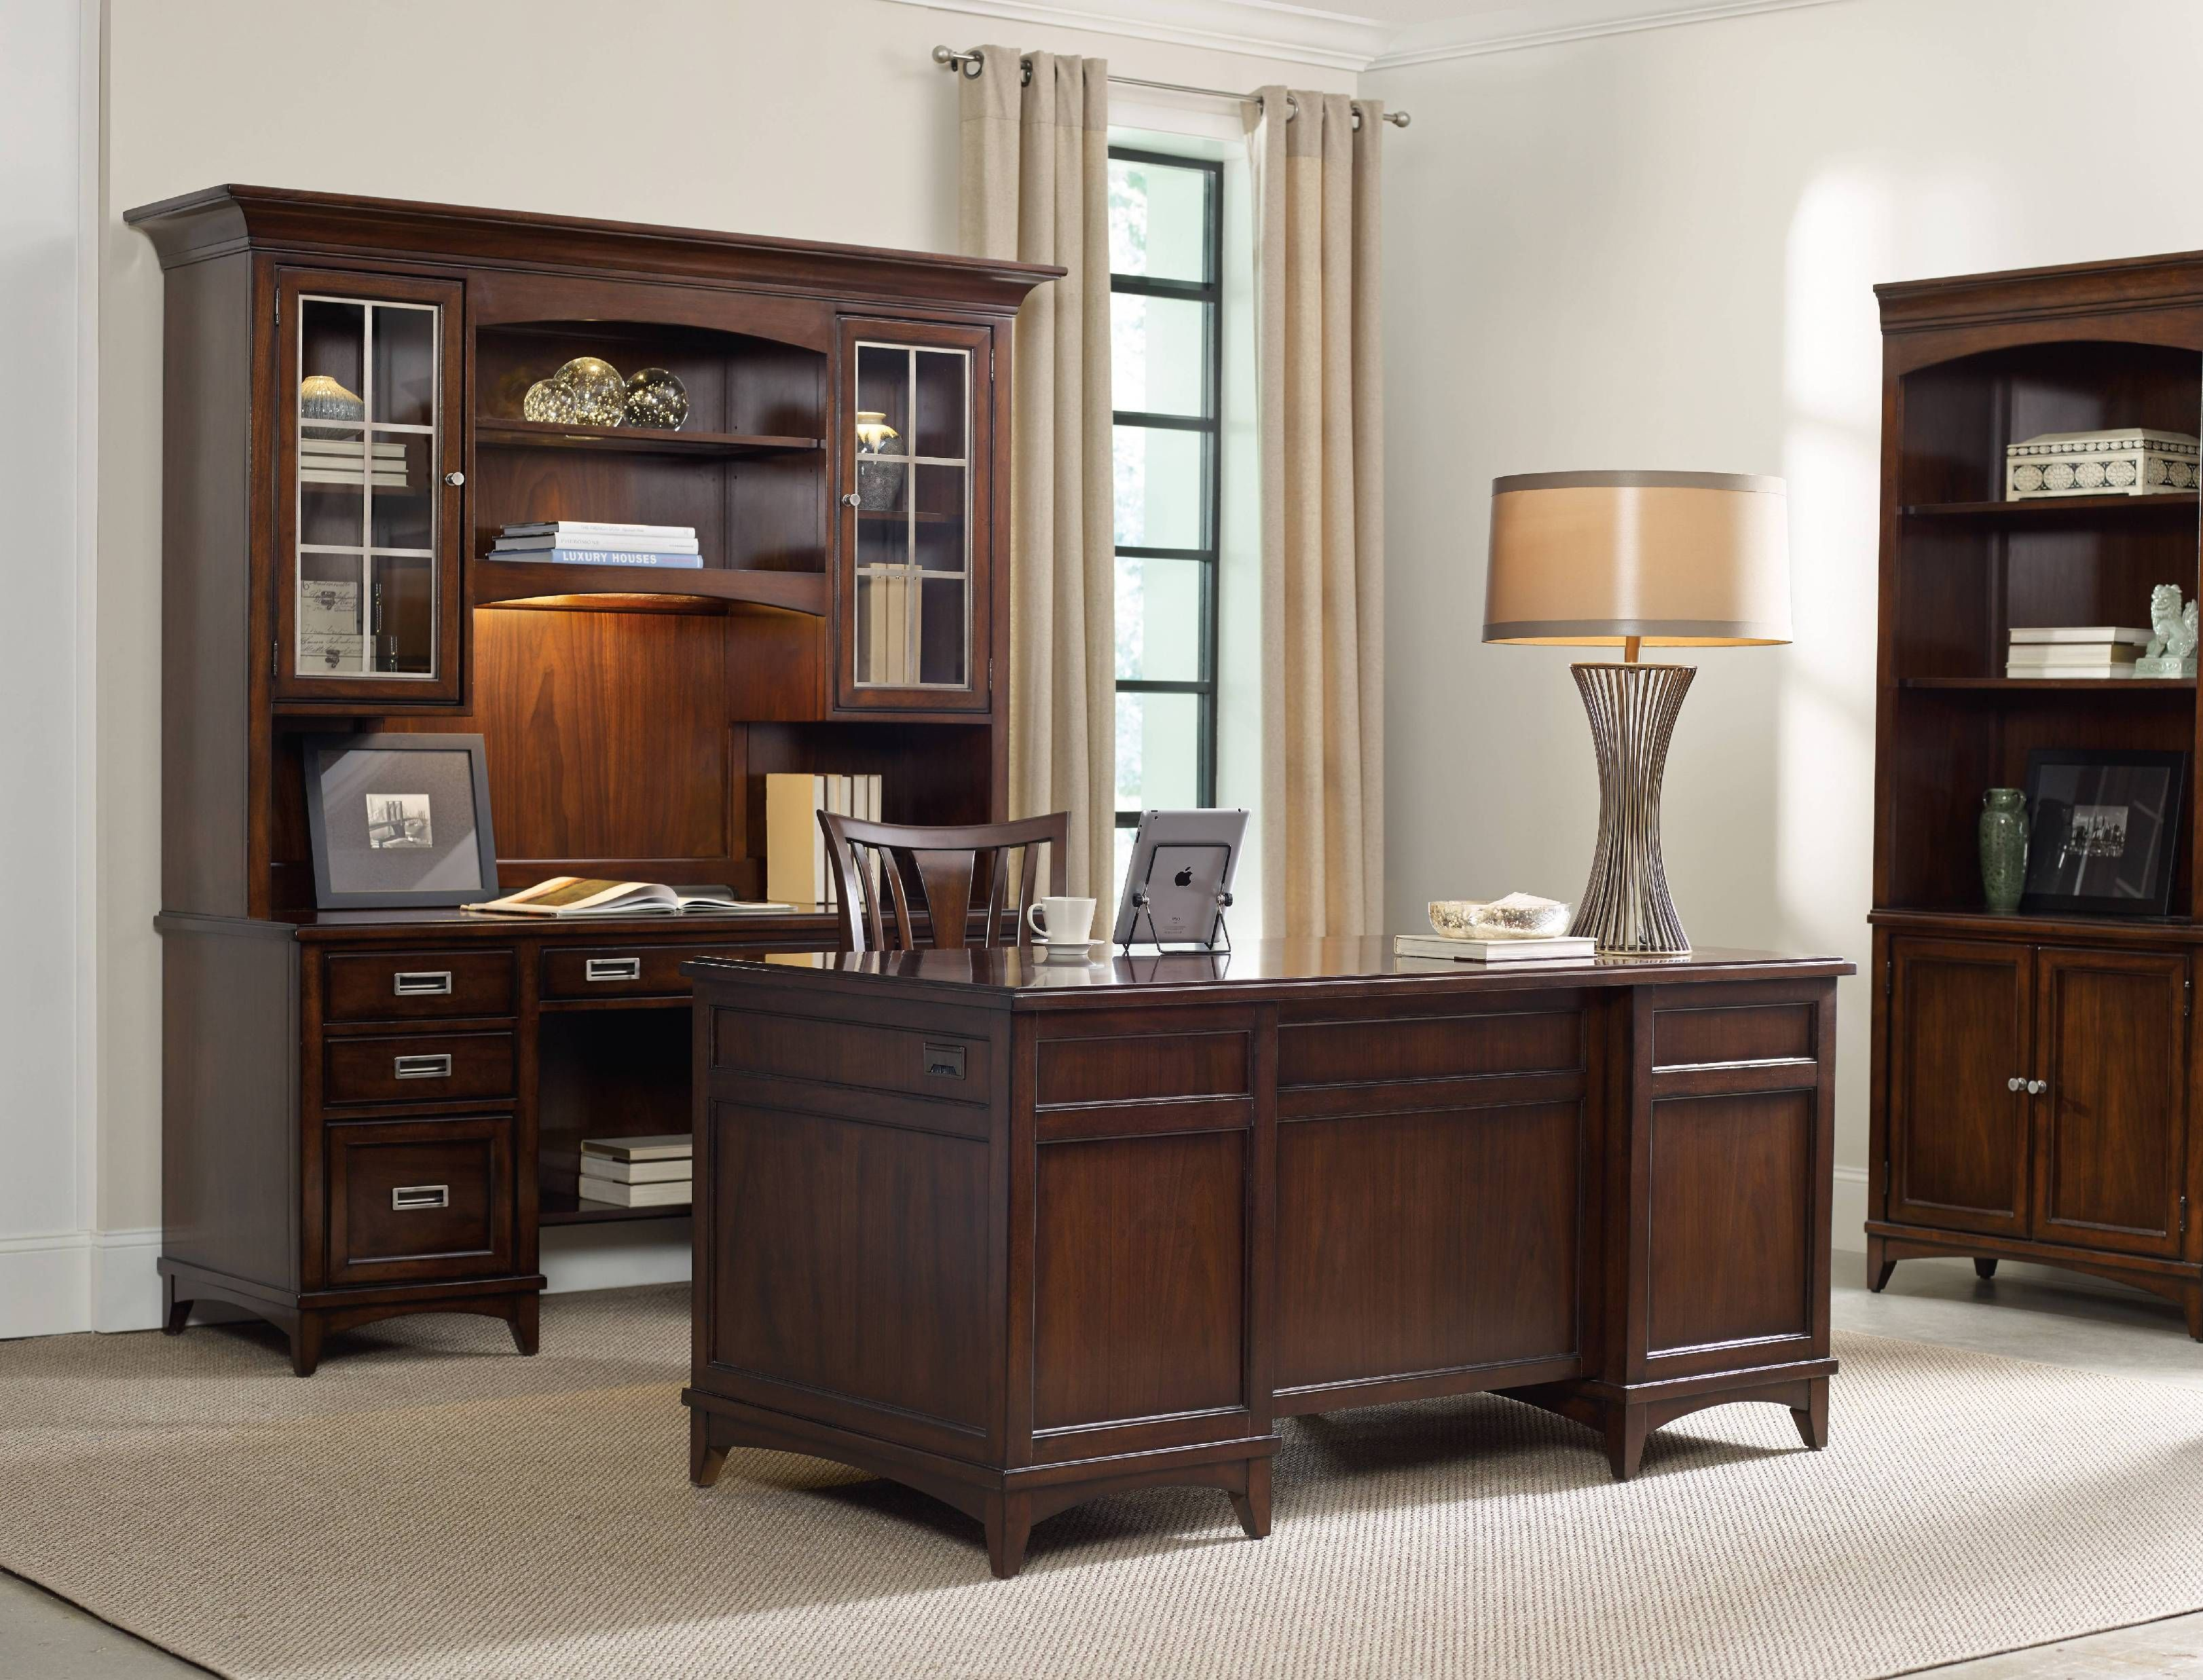 Credenza Furniture Home Office Laude Executive Desk